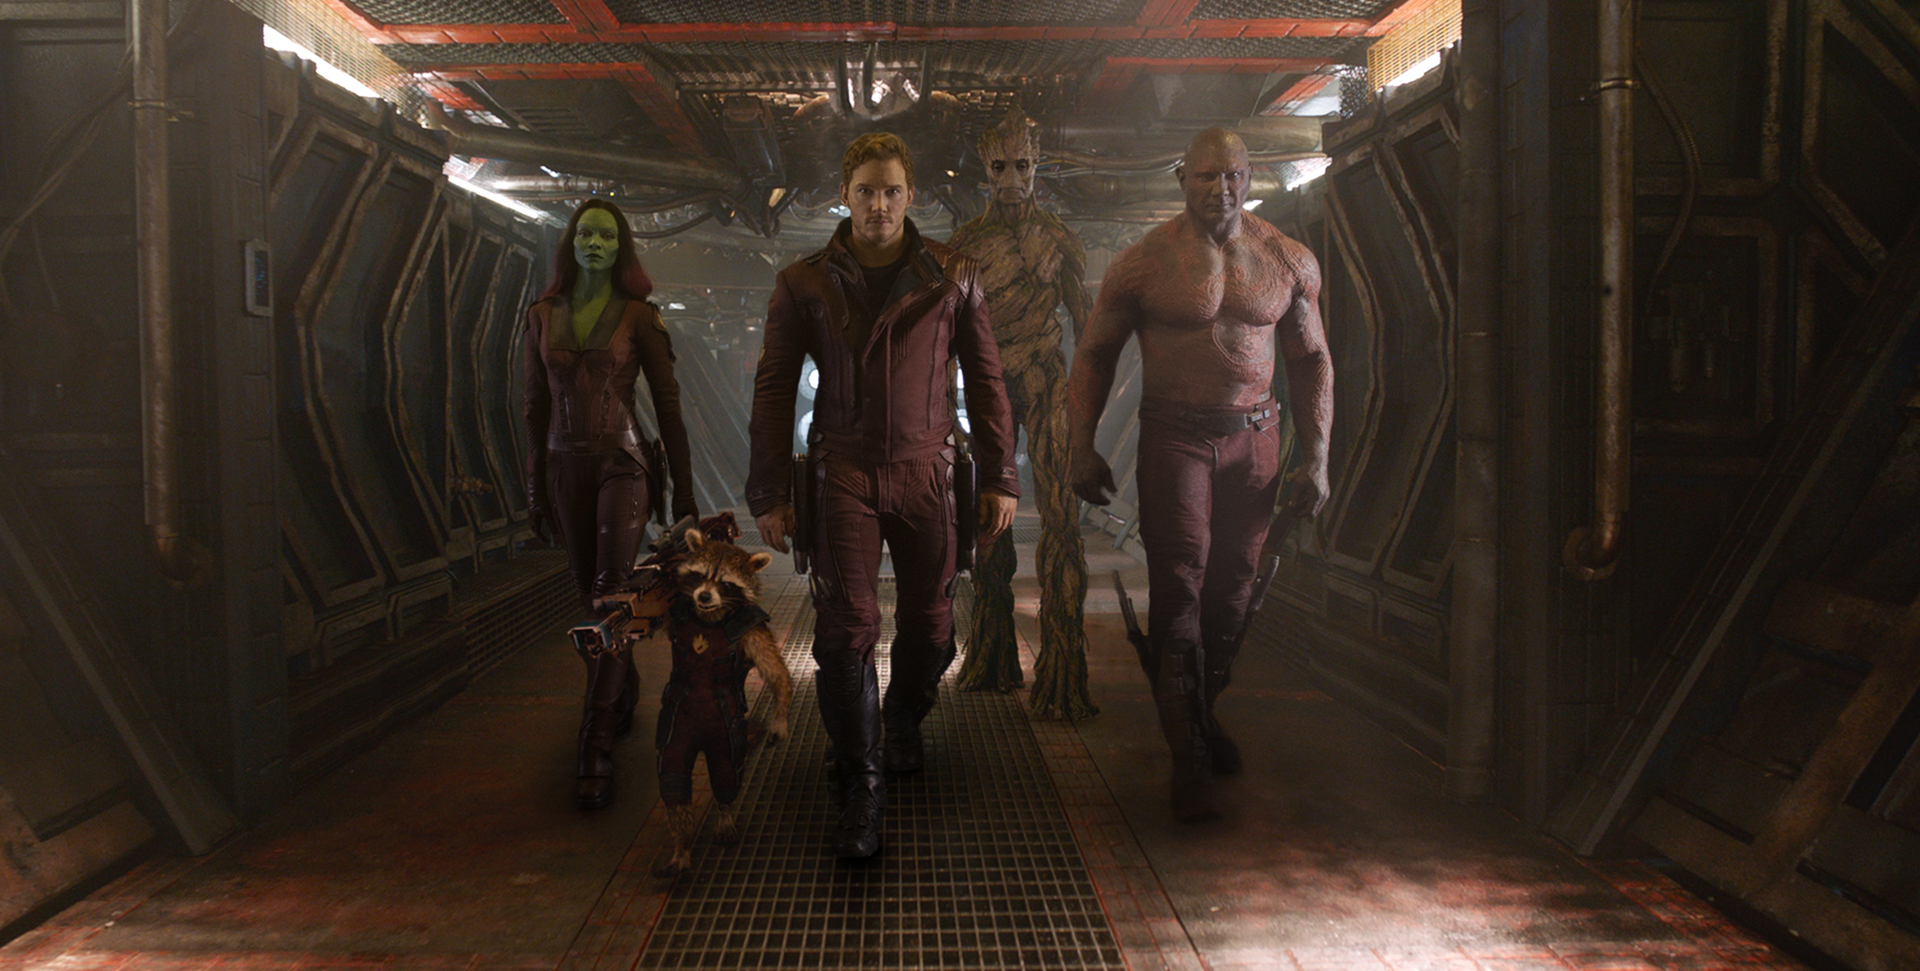 6souls entertainment galaxy guardians from film team think original alien century that earth marvel some members nova epic heroes voice potential feature yondu possibility force mentioned movie last centauri vance peter 20th captain strange gunn space group recently including cast director comic travel back been james against with chris time heres announced gotg1